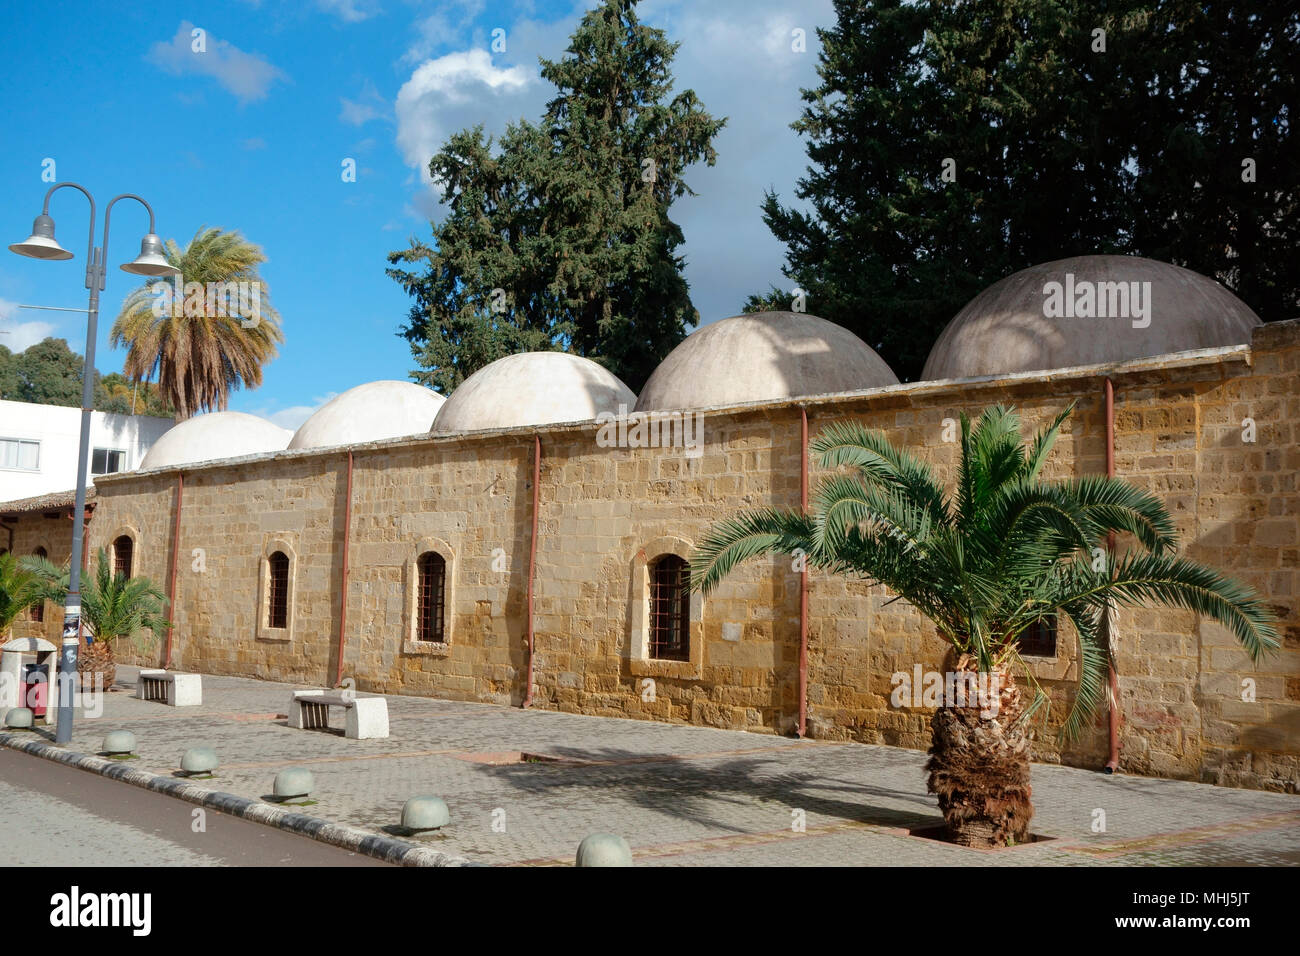 Mevlevi Shrine Museum, a former 17th-century tekke of mystic Islamic sect known as Mevlevi order (whirling dervishes), North Nicosia, Northern Cyprus - Stock Image